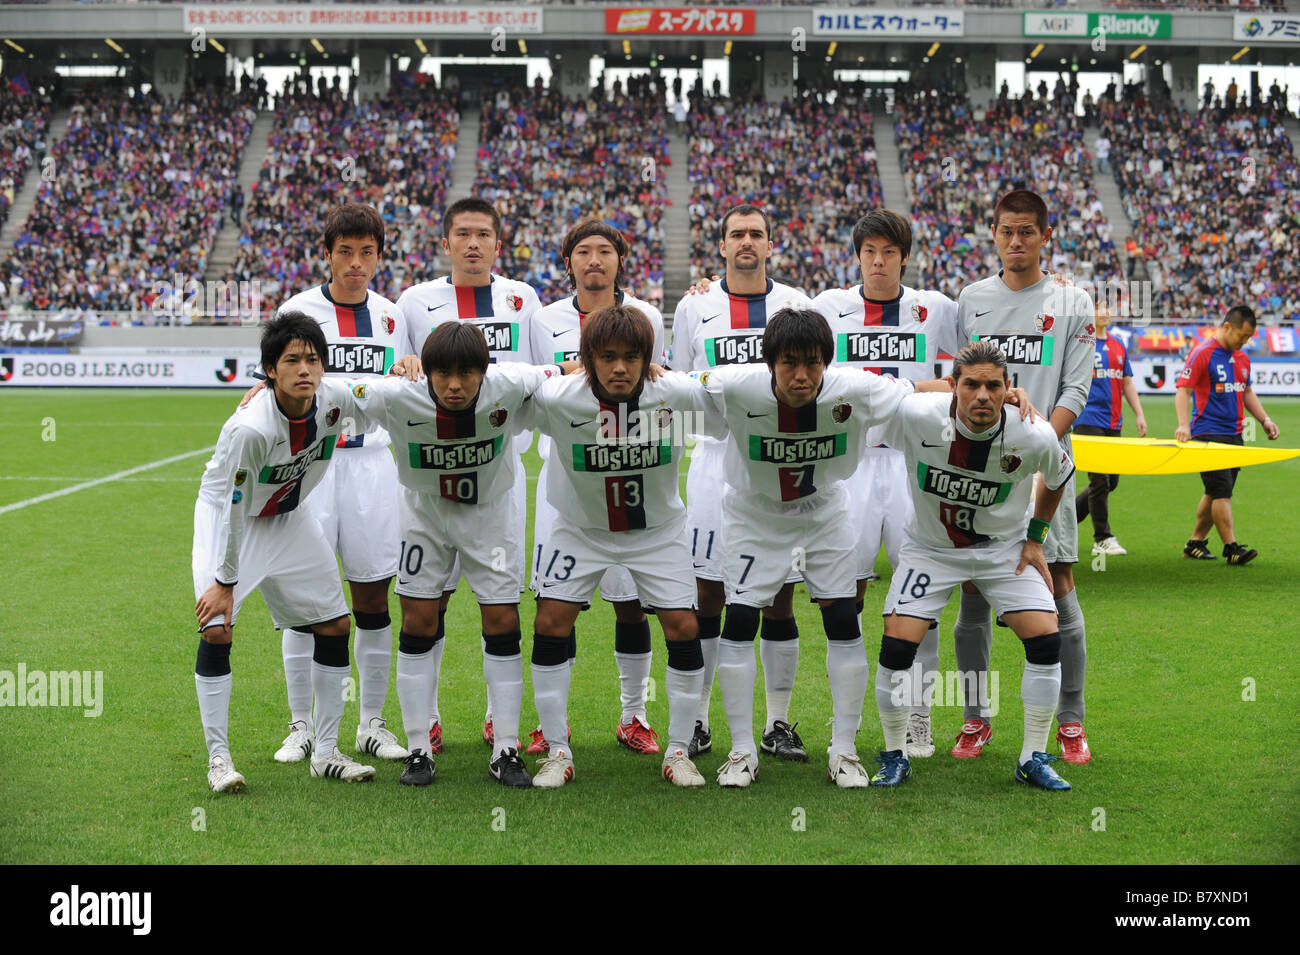 Kashima Antlers team group line up OCTOBER 26 2008 Football Kashima Antlers team group shot Top row L to R Takeshi Stock Photo